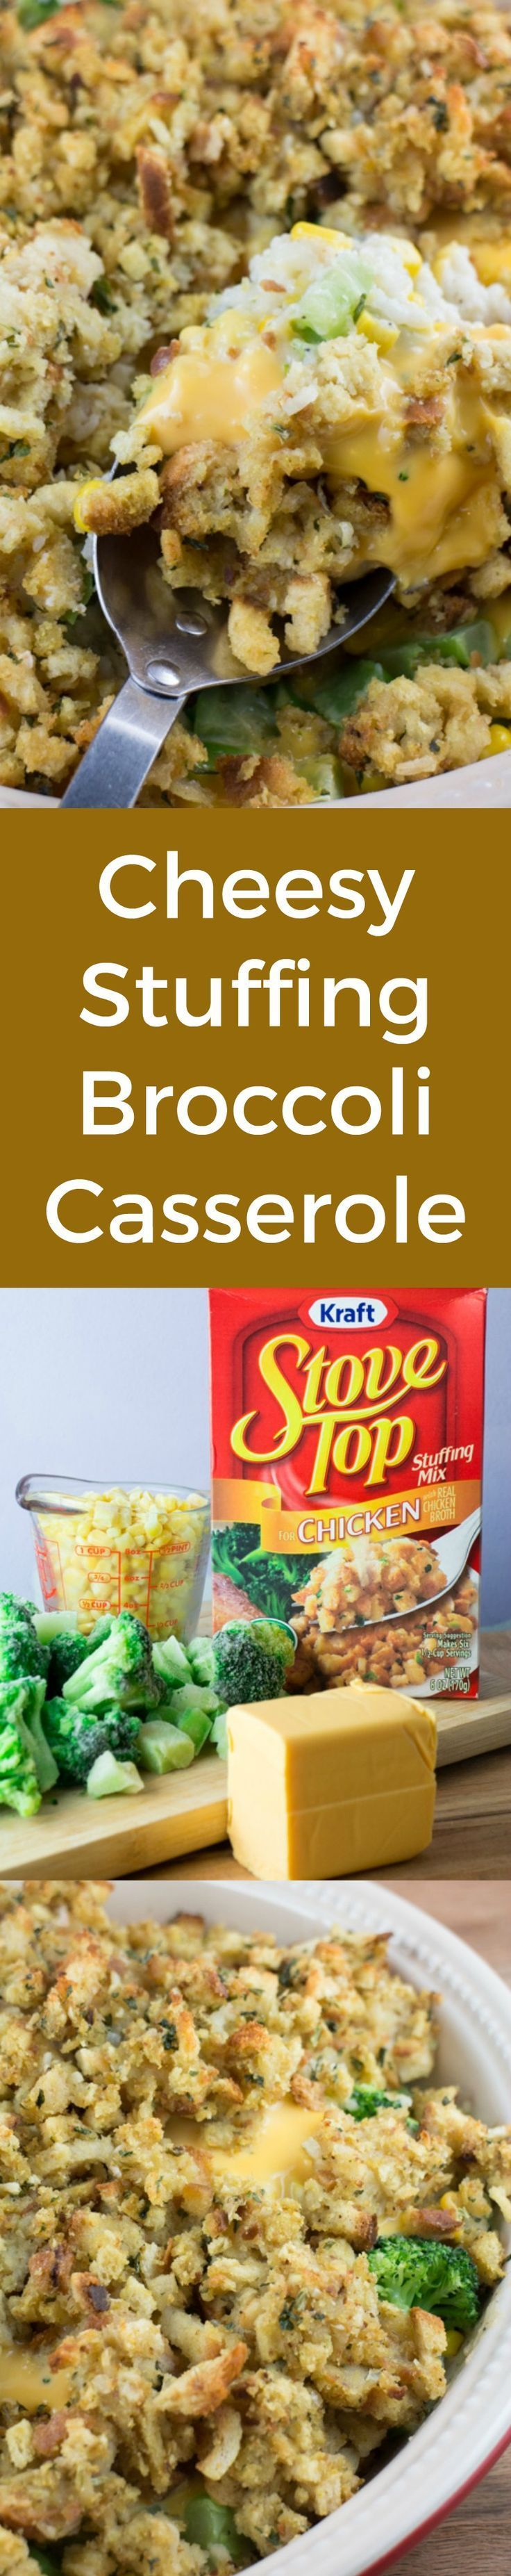 Cheesy Stuffing Broccoli Casserole is a delicious easy to make casserole recipe.    This is perfect for a Christmas or Thanksgiving side dish too!